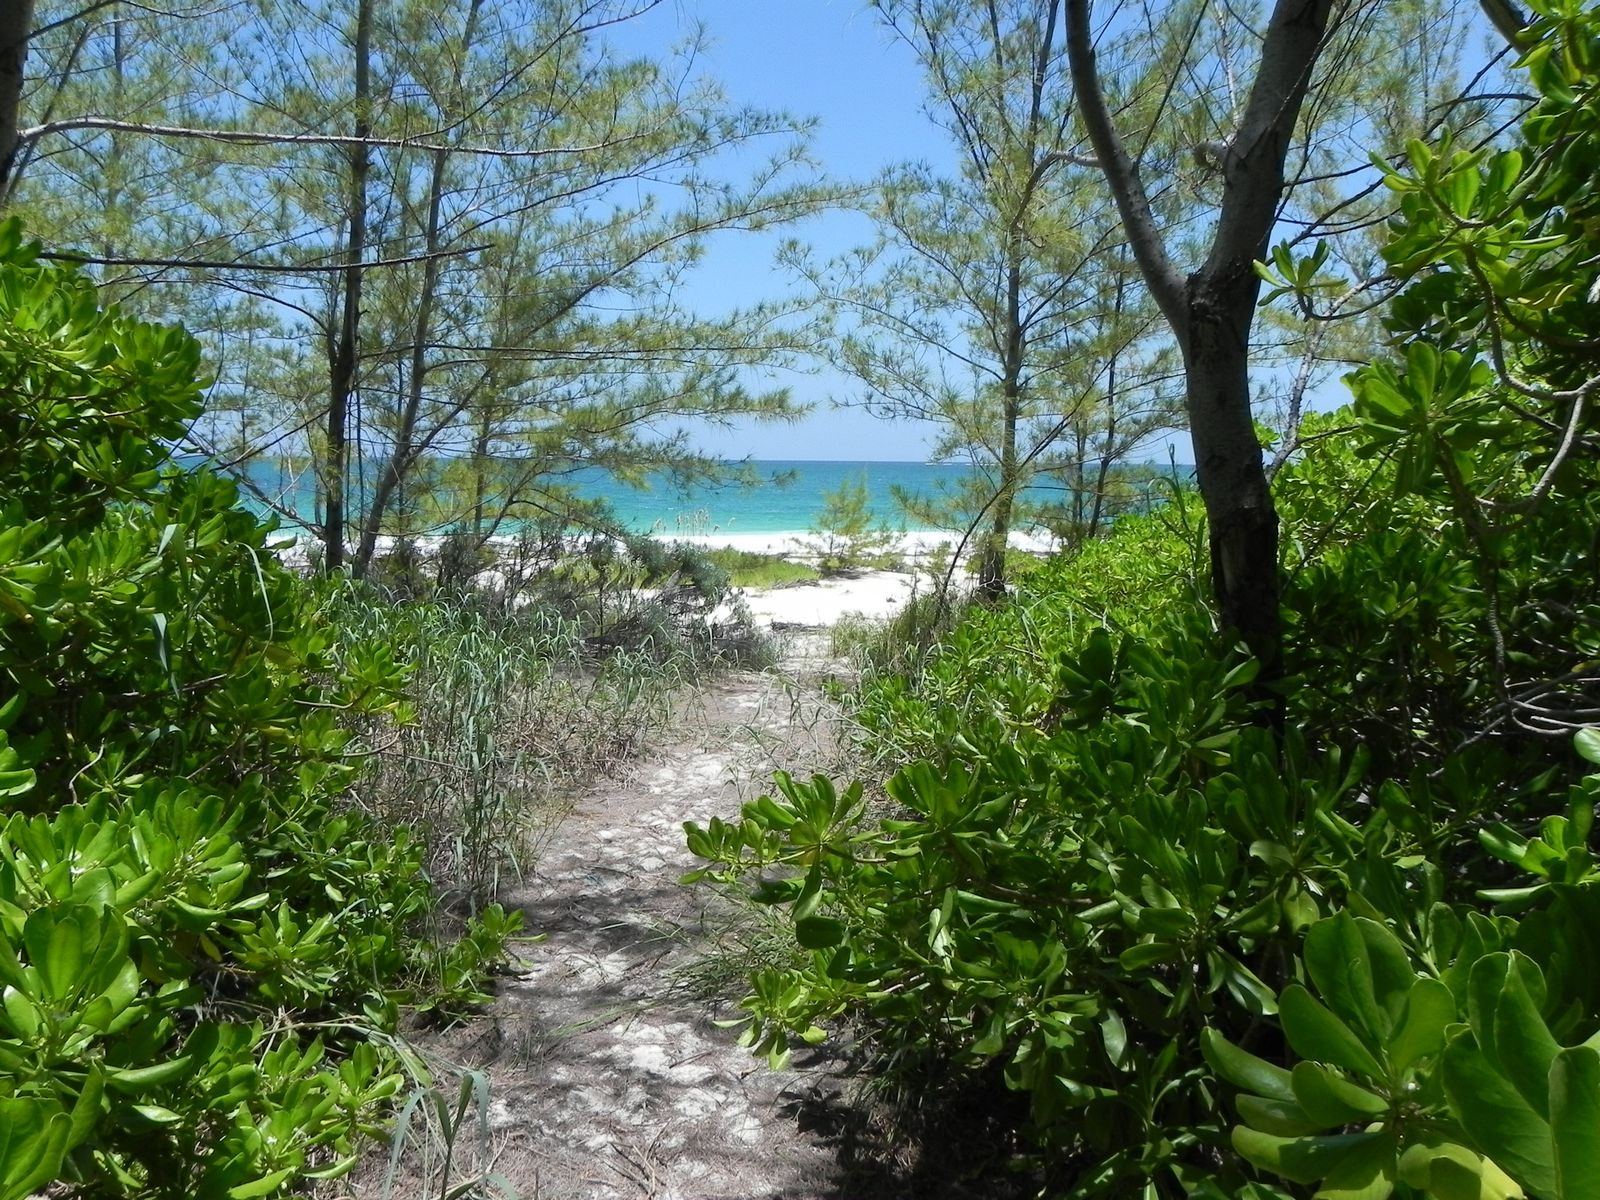 Terreno por un Venta en Bahama Palm Shores Lot 16 Bahama Palm Shores, Abaco, Bahamas